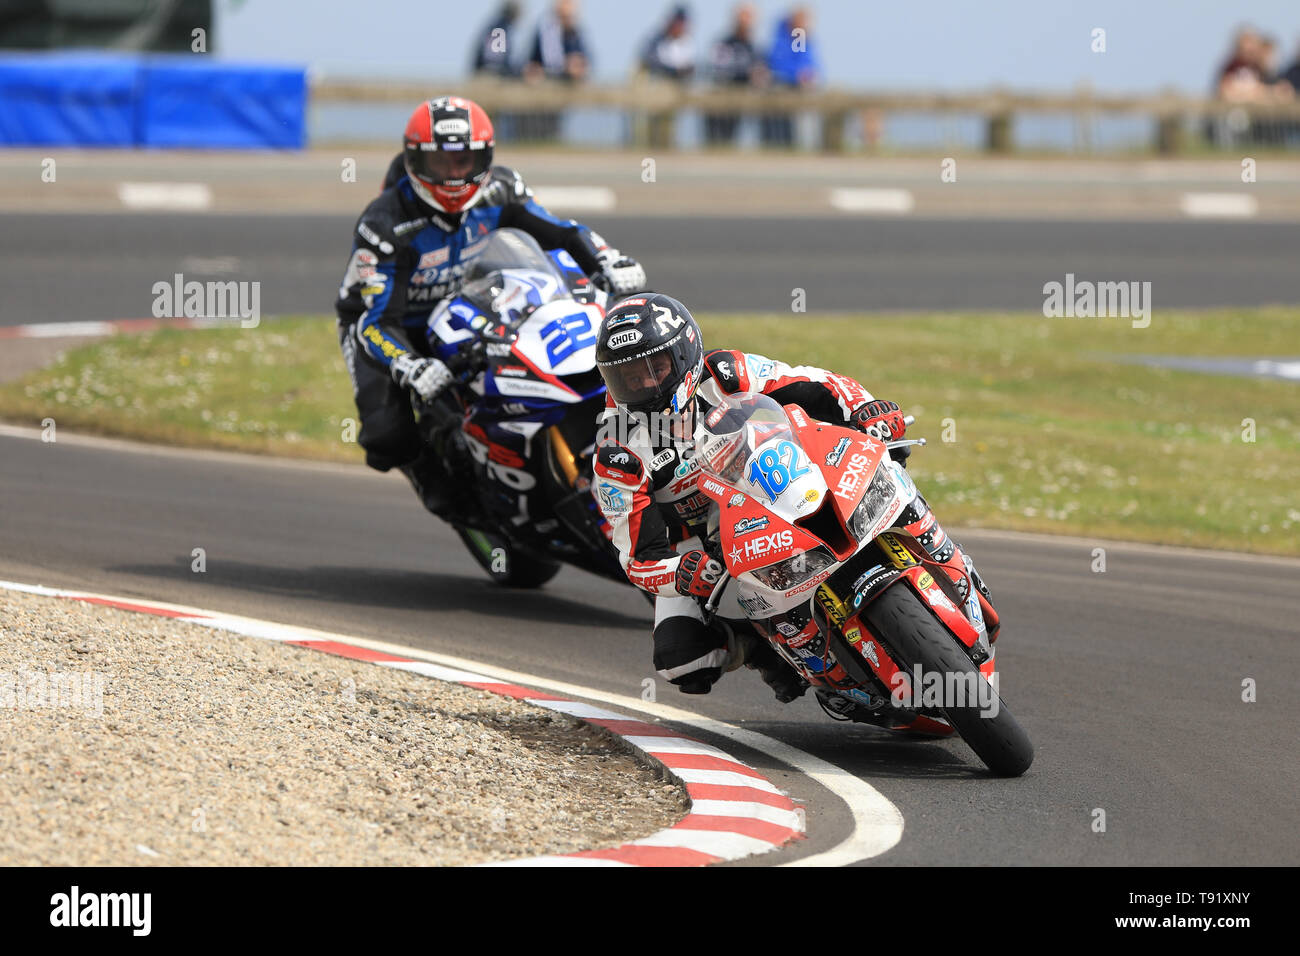 Portrush, Northern Ireland. 16th May, 2019. International North West 200 Motorcycle road racing, Thursday practice and evening racing; France's Denis Xavier on the Optimark Road Racing Team Honda and Leichtenstein's Horst Saiger on the Saiger Racing Yamaha during the SuperSport qualifying session Credit: Action Plus Sports/Alamy Live News - Stock Image